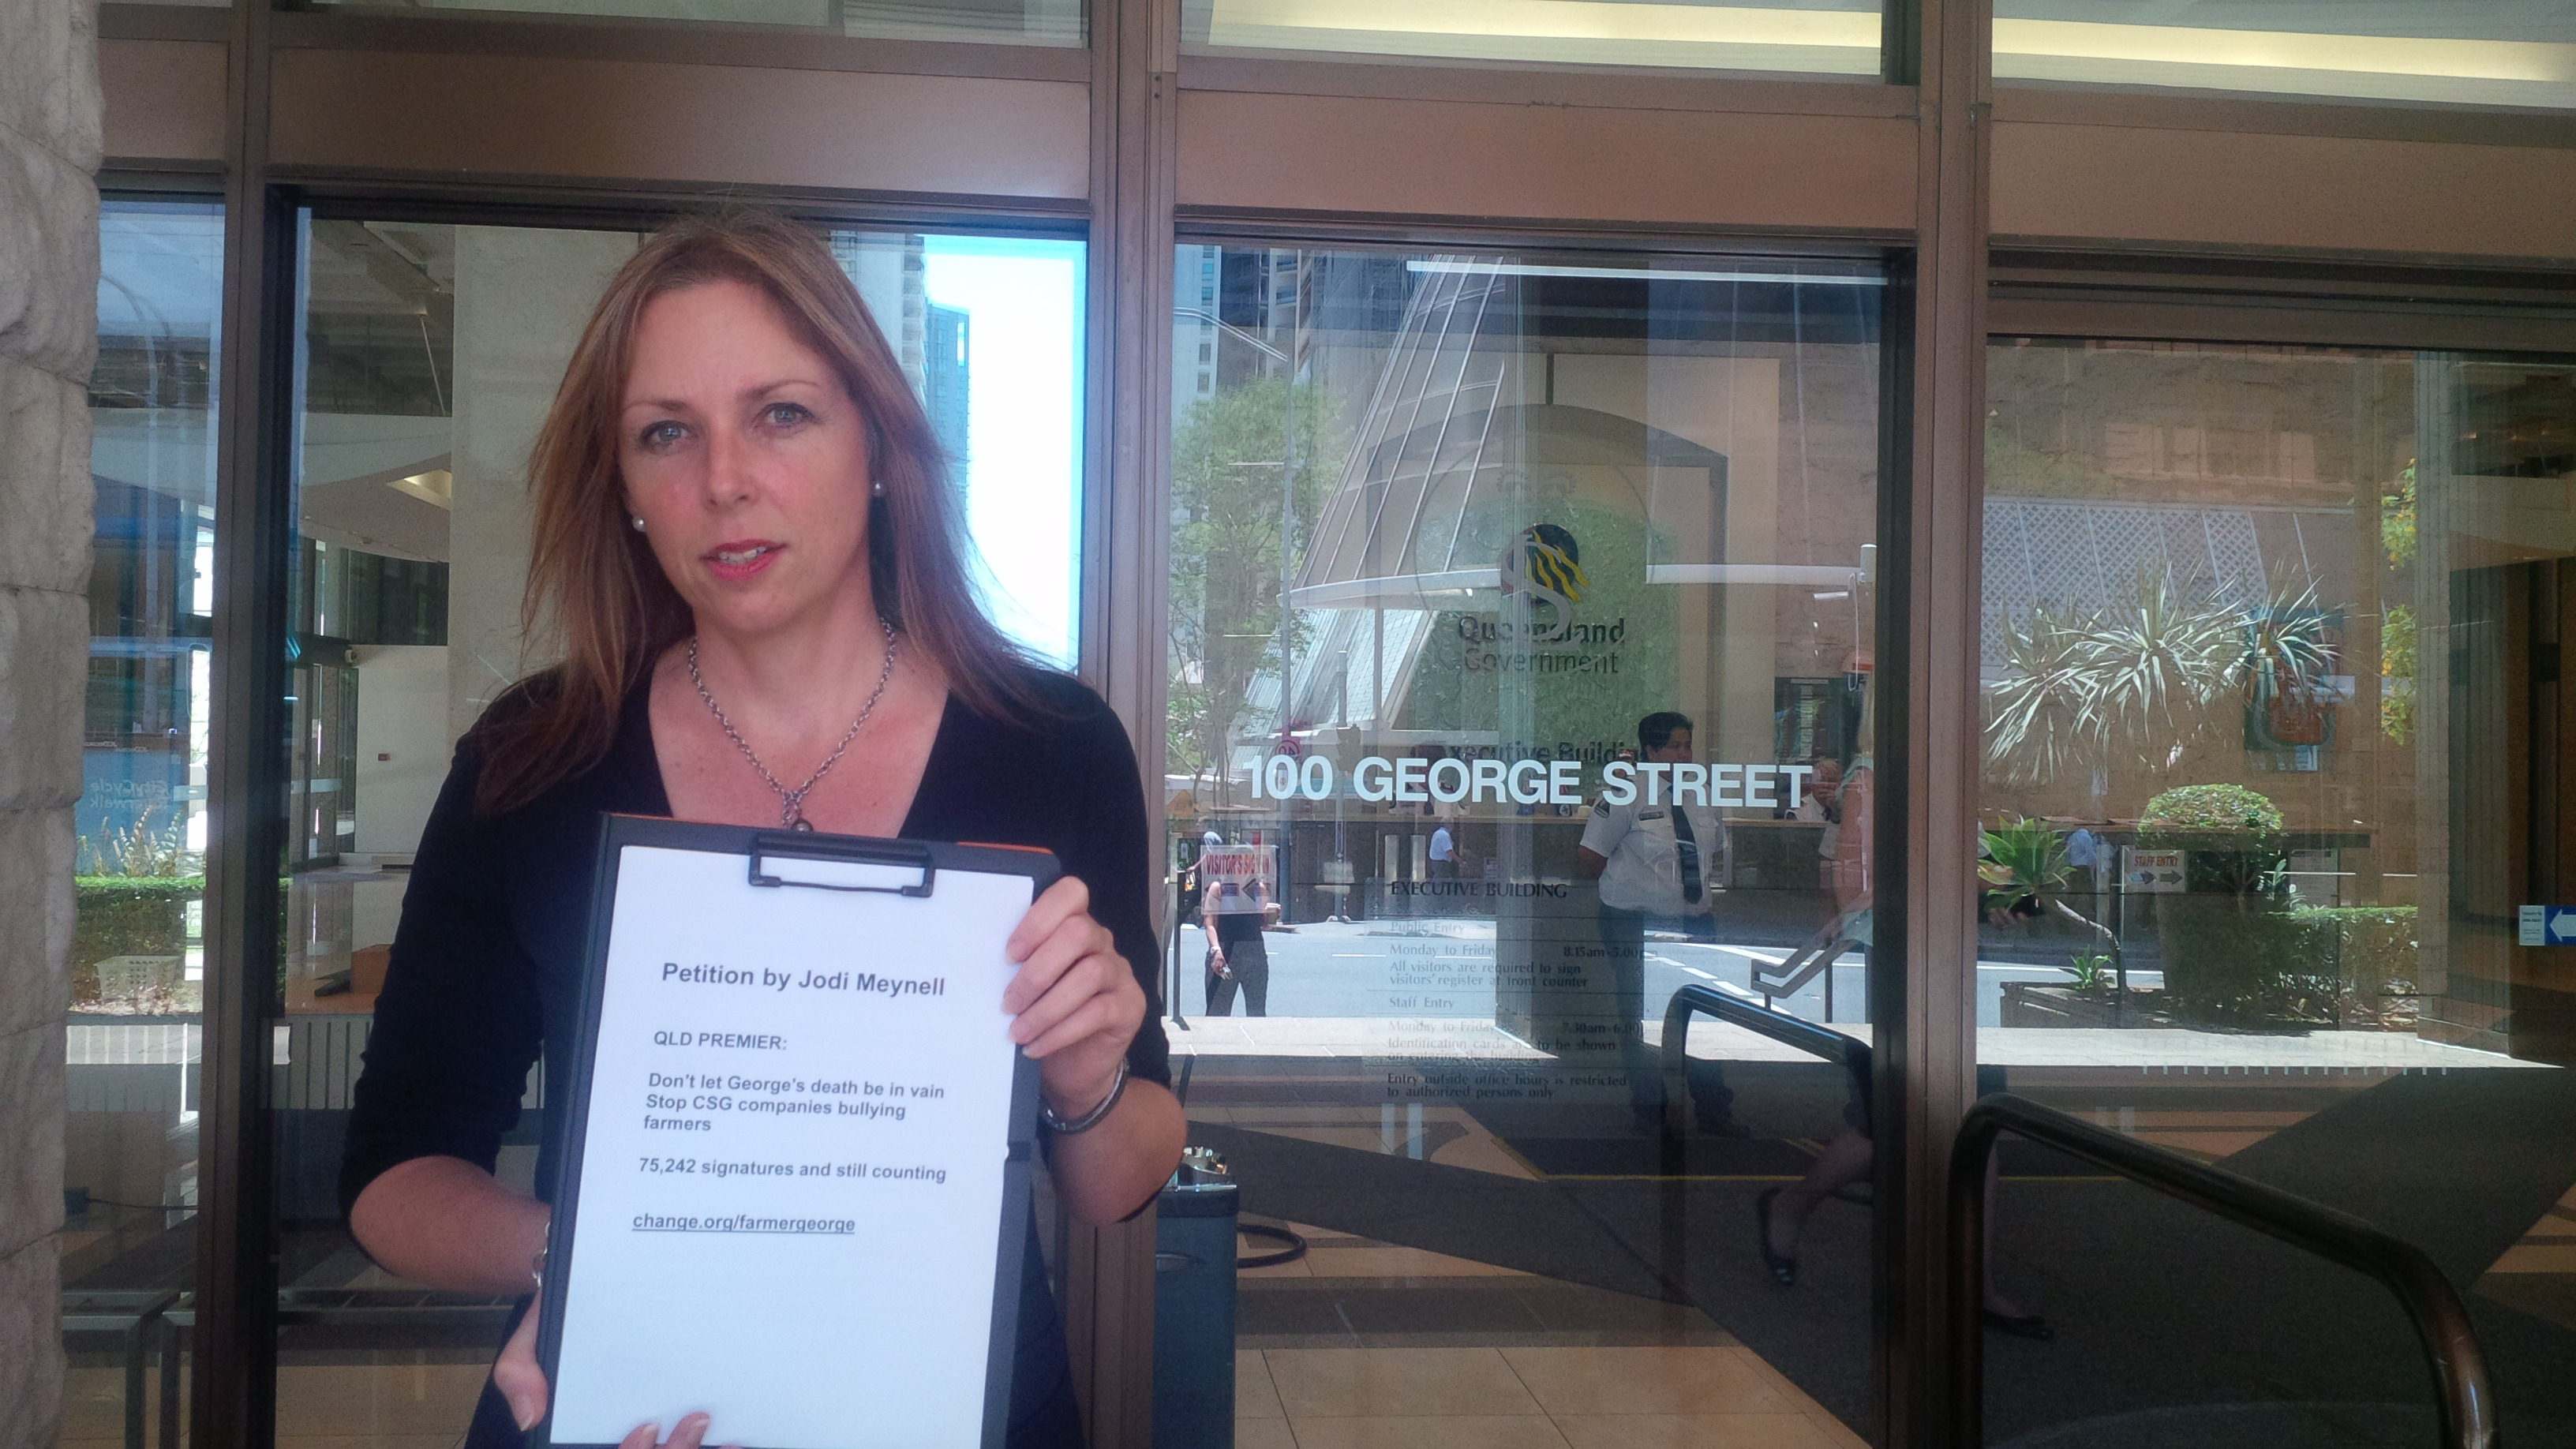 Jodi_Meynell_with_George_Bender_petition.jpg